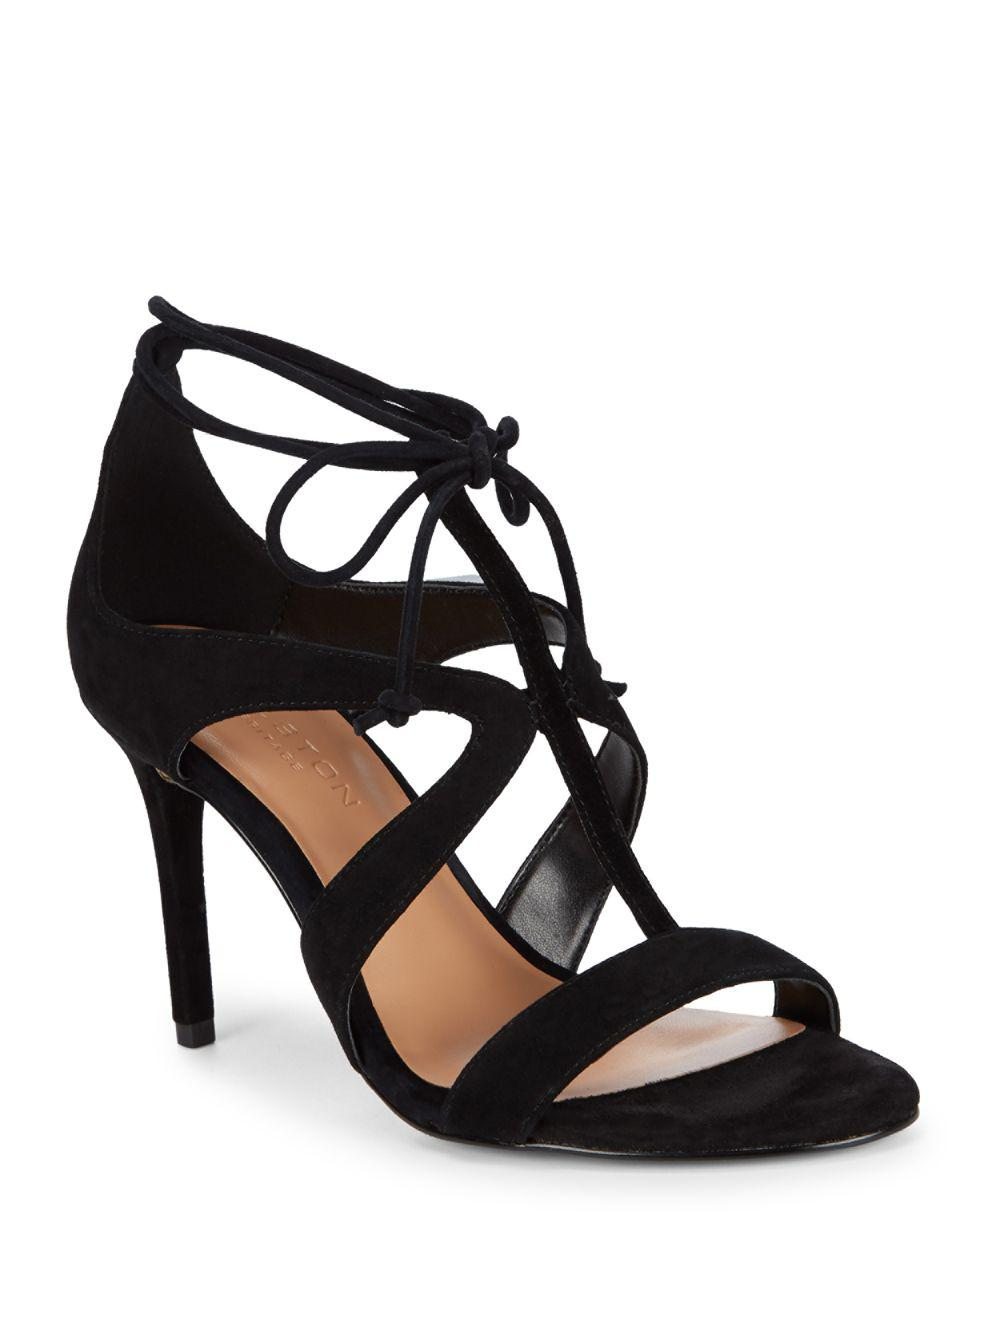 Halston Patent Leather T-Strap Sandals under $60 cheap price free shipping low price fee shipping high quality 100% original for sale 4AKQy75km